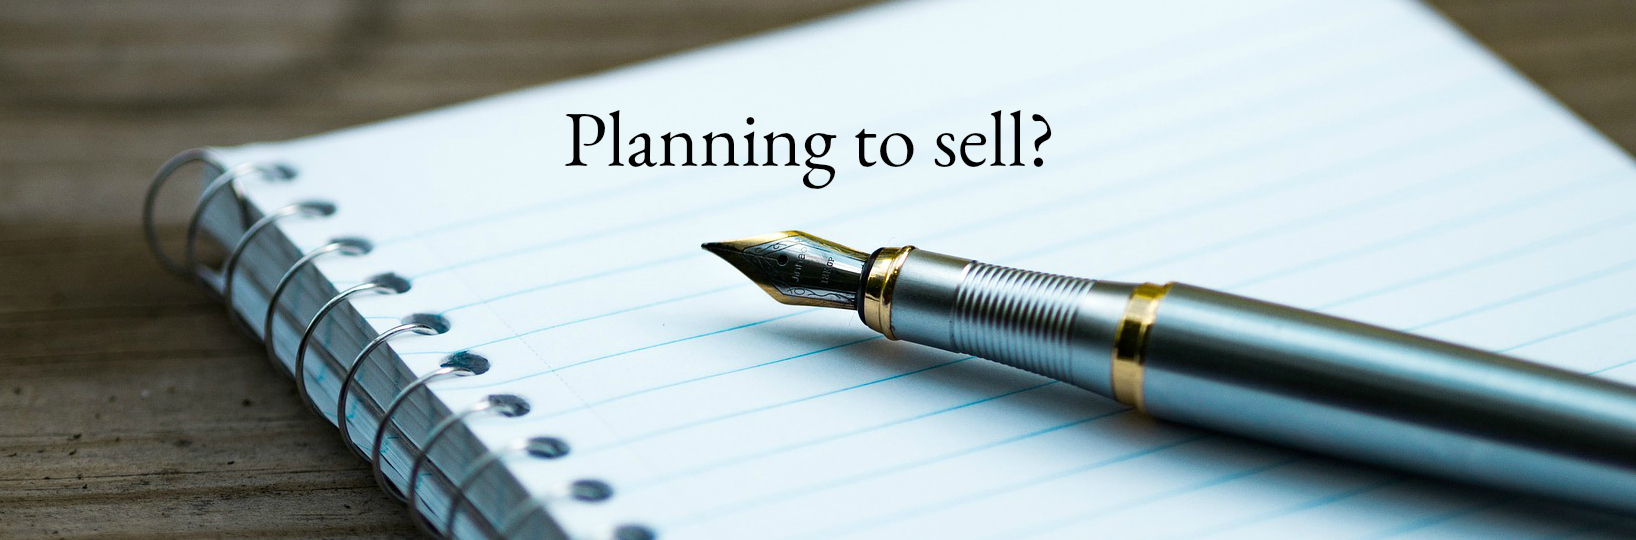 planning_to_sell_your_home_-_header